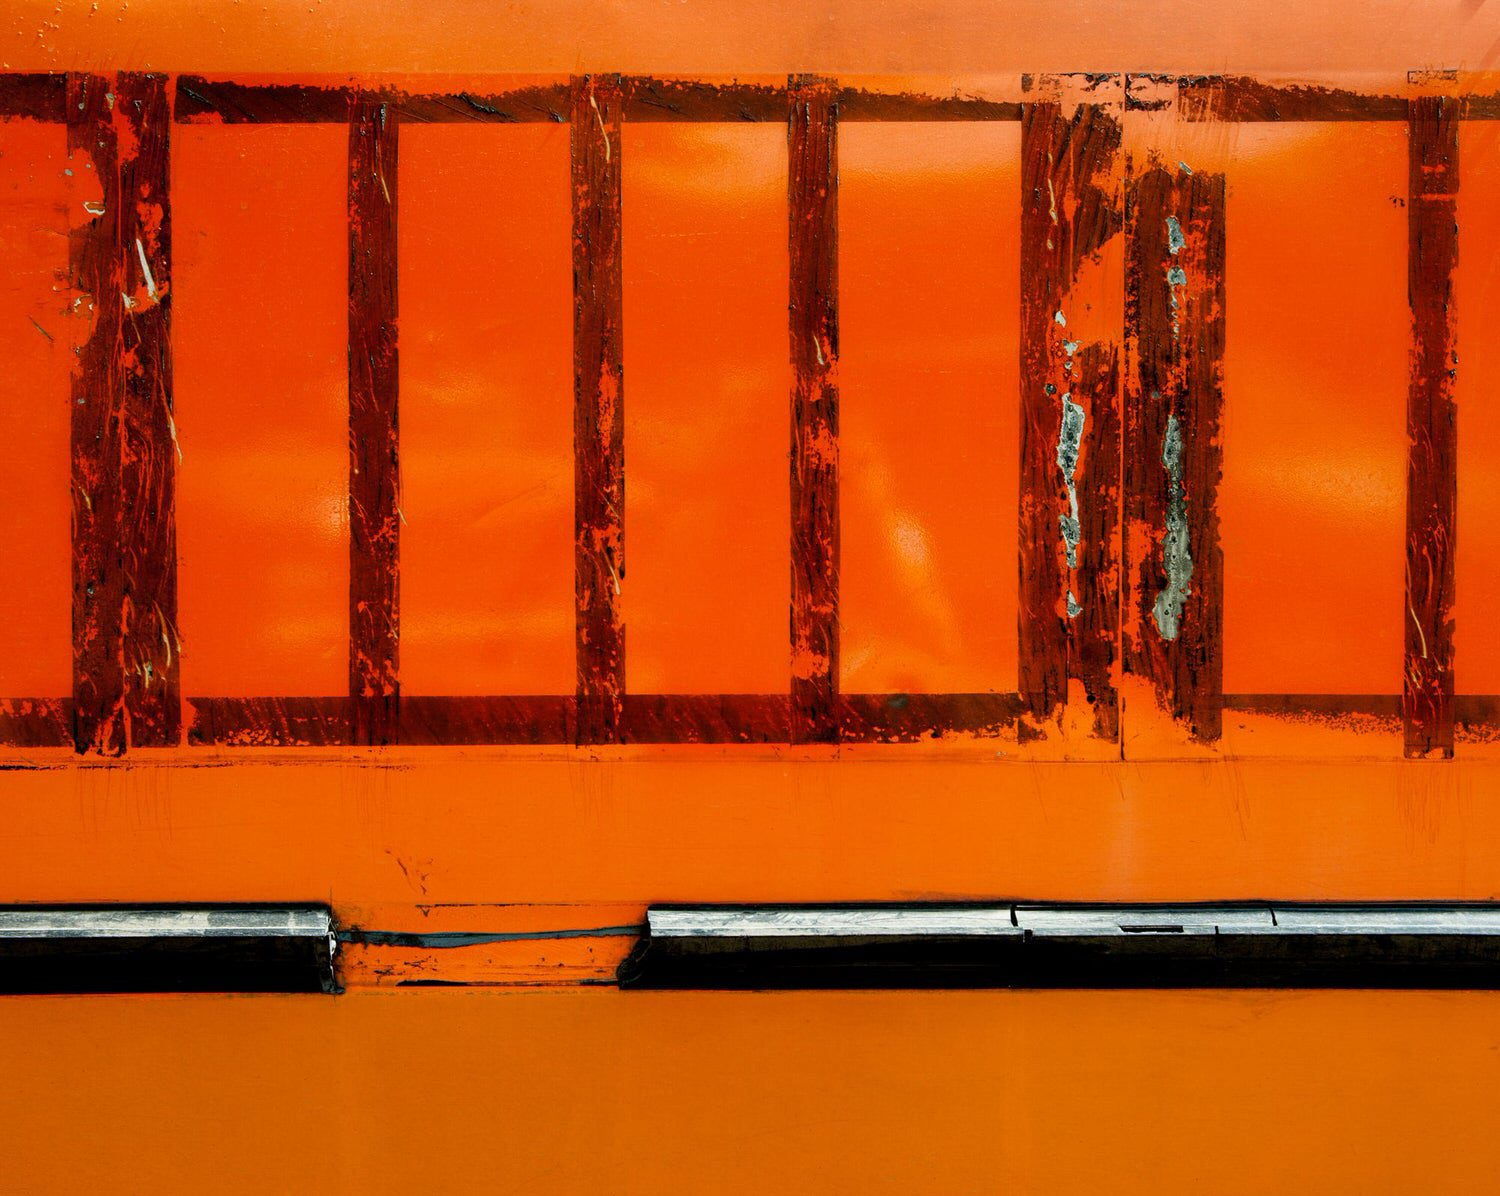 Fotostudio Anton Stefan Fotograf 19 anton stefan color buswork orange